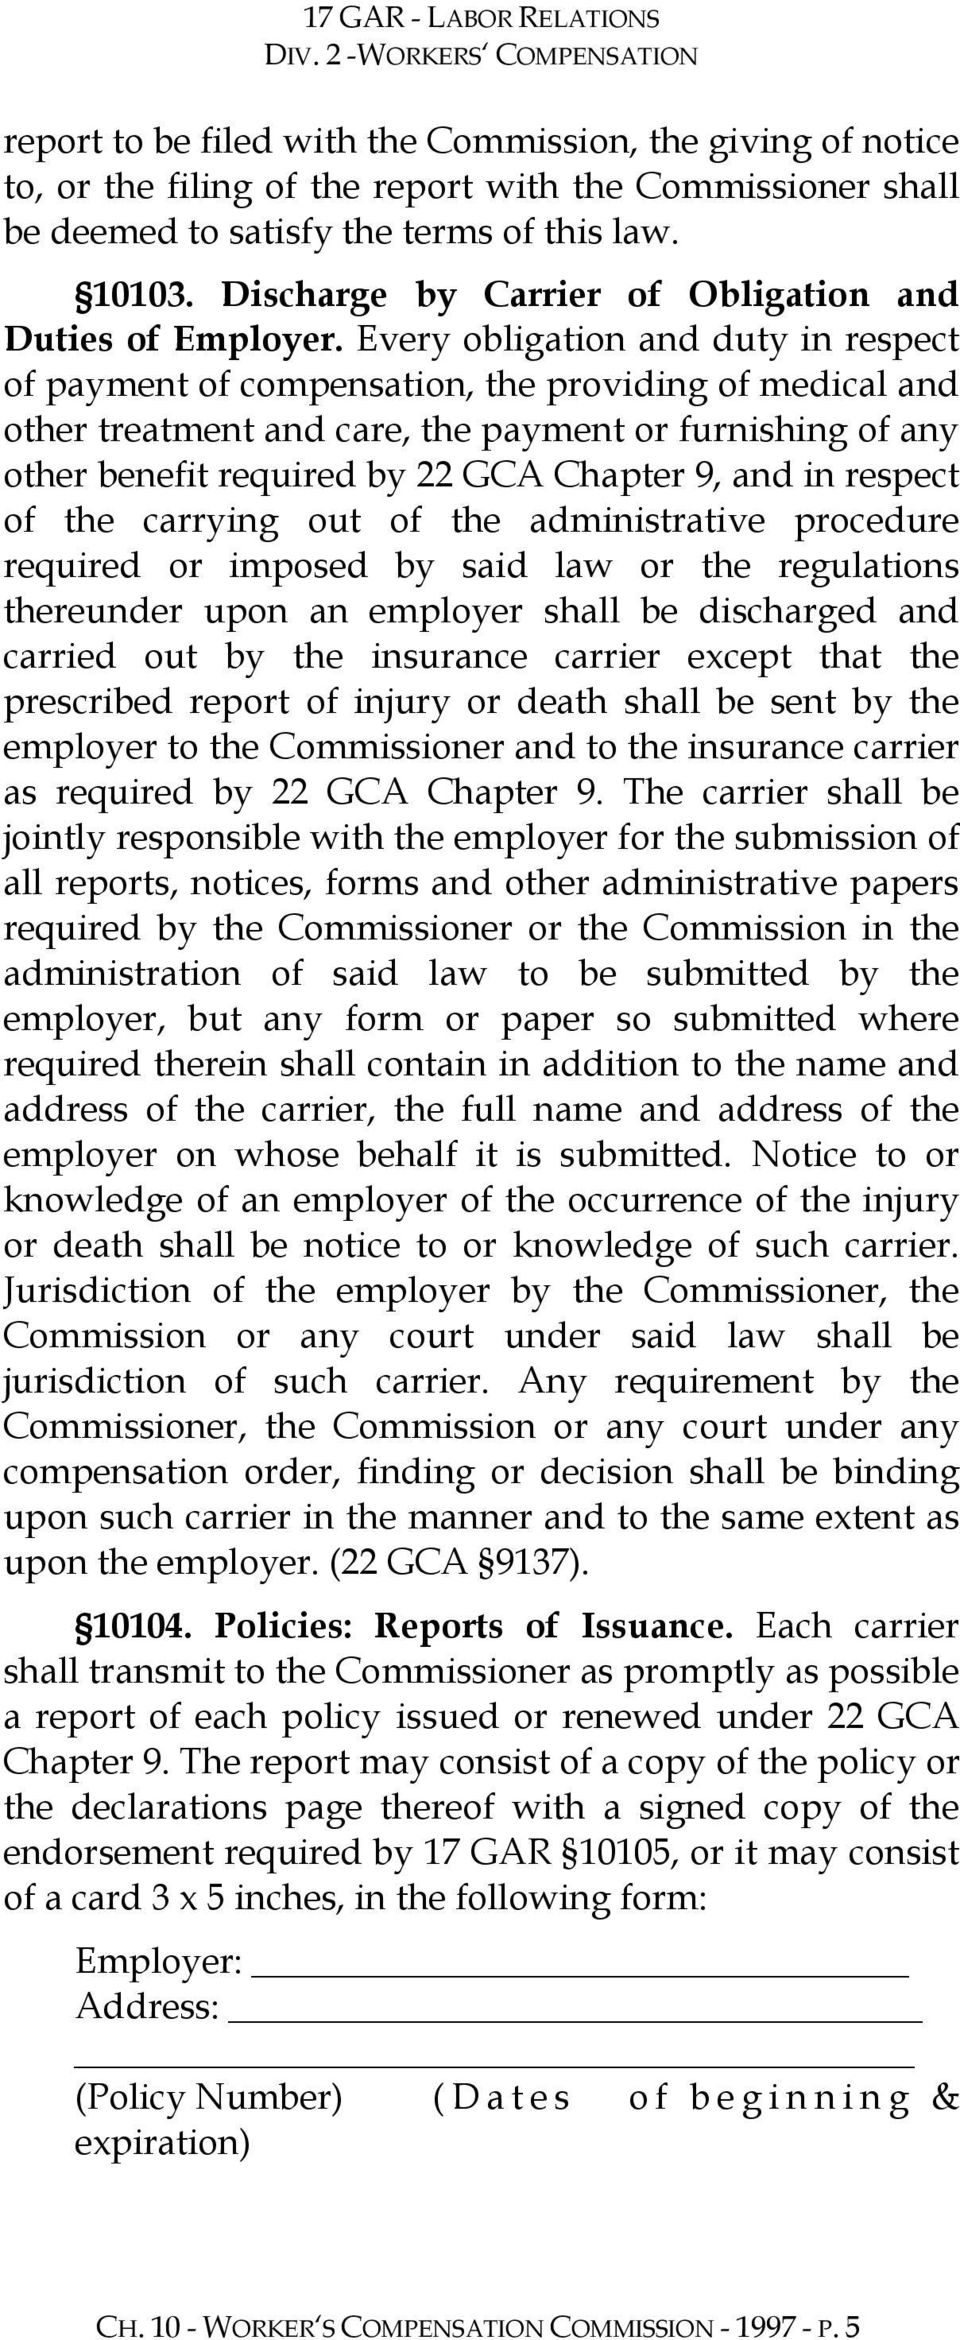 Every obligation and duty in respect of payment of compensation, the providing of medical and other treatment and care, the payment or furnishing of any other benefit required by 22 GCA Chapter 9,